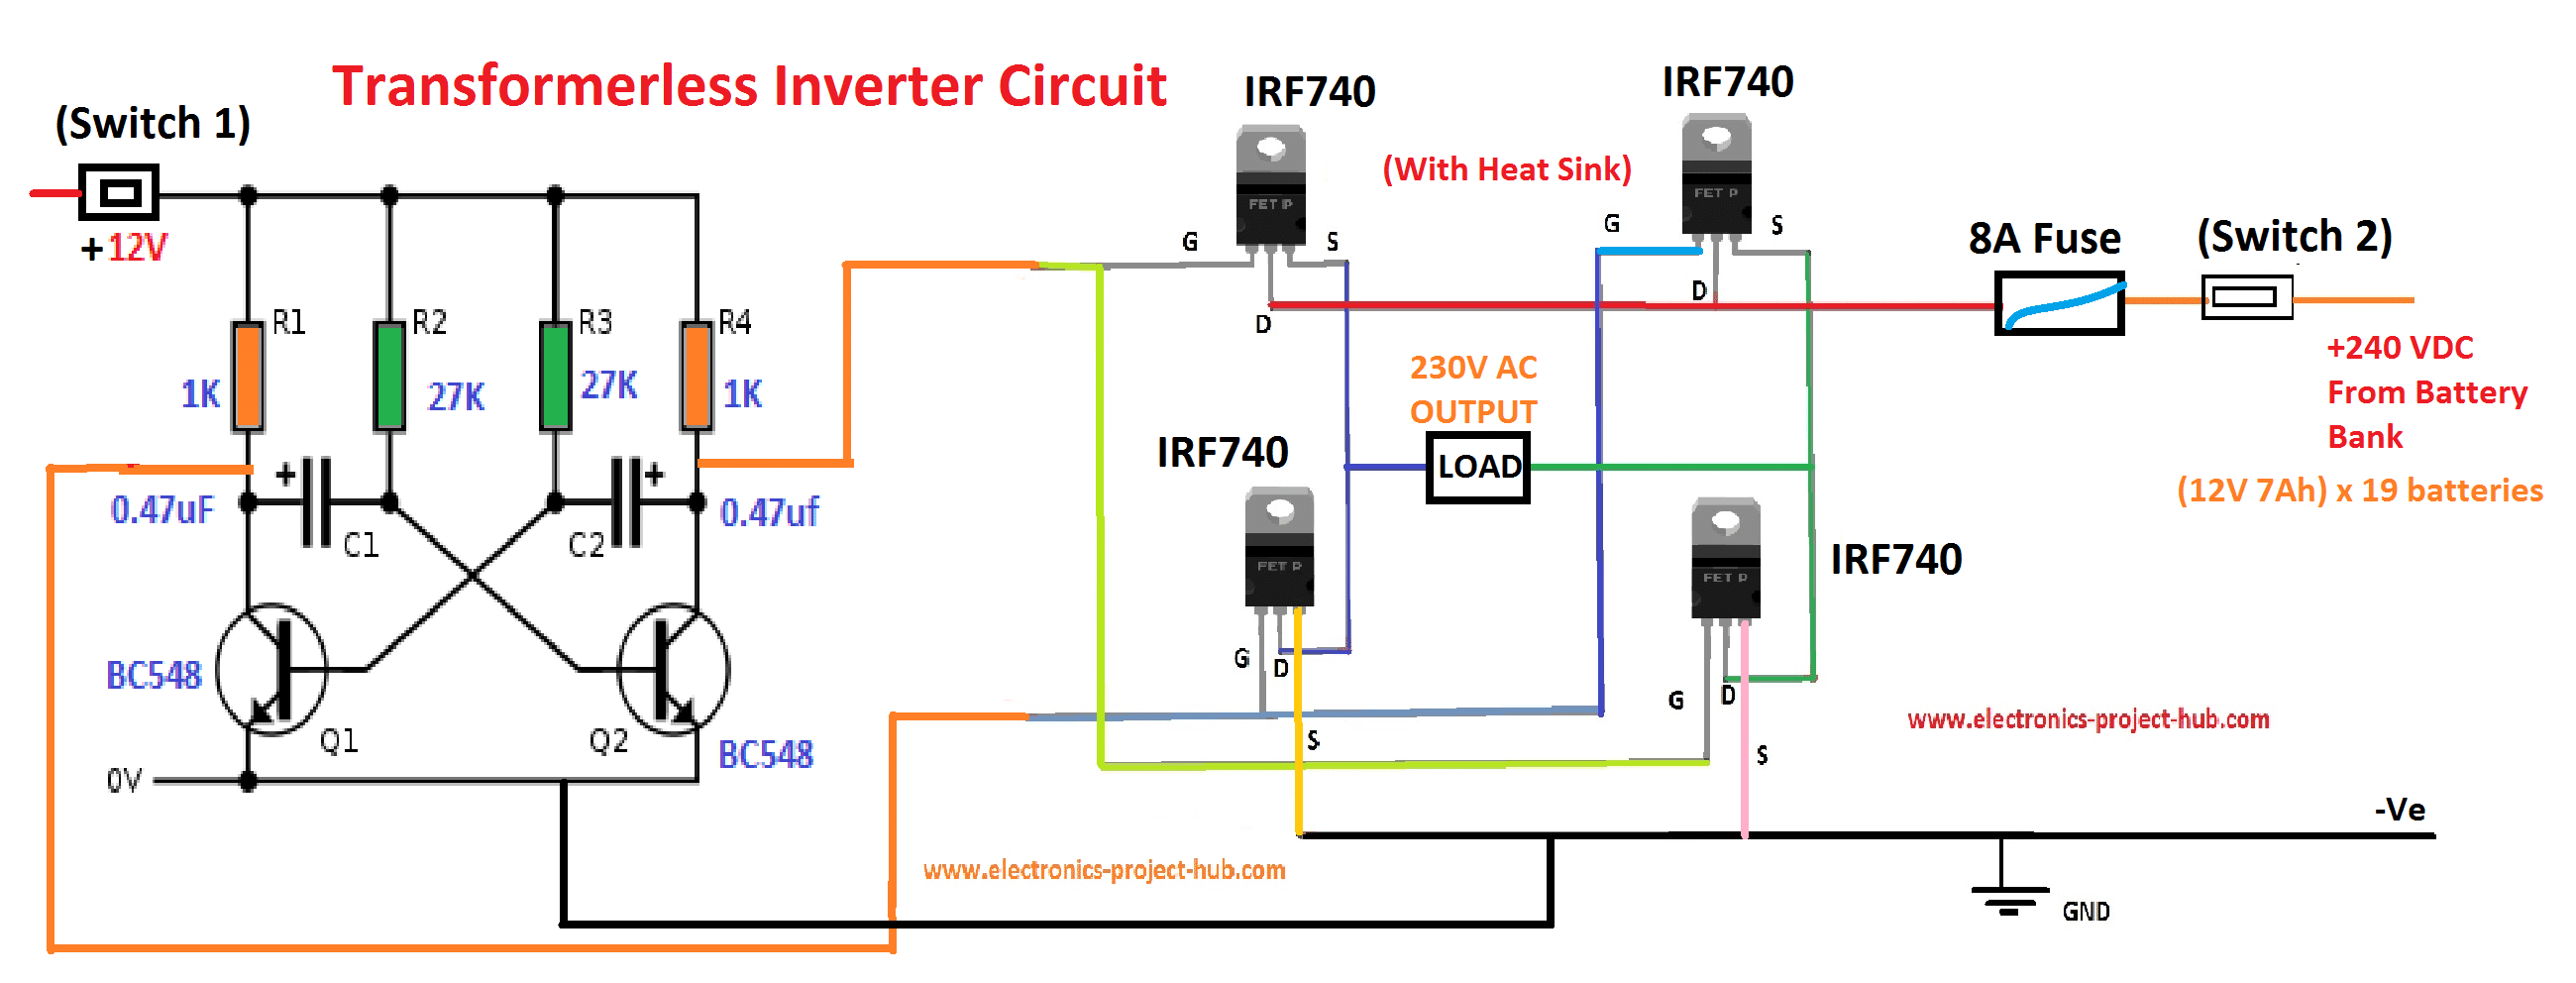 Block Diagram of Transformer-less Inverter Circuit: